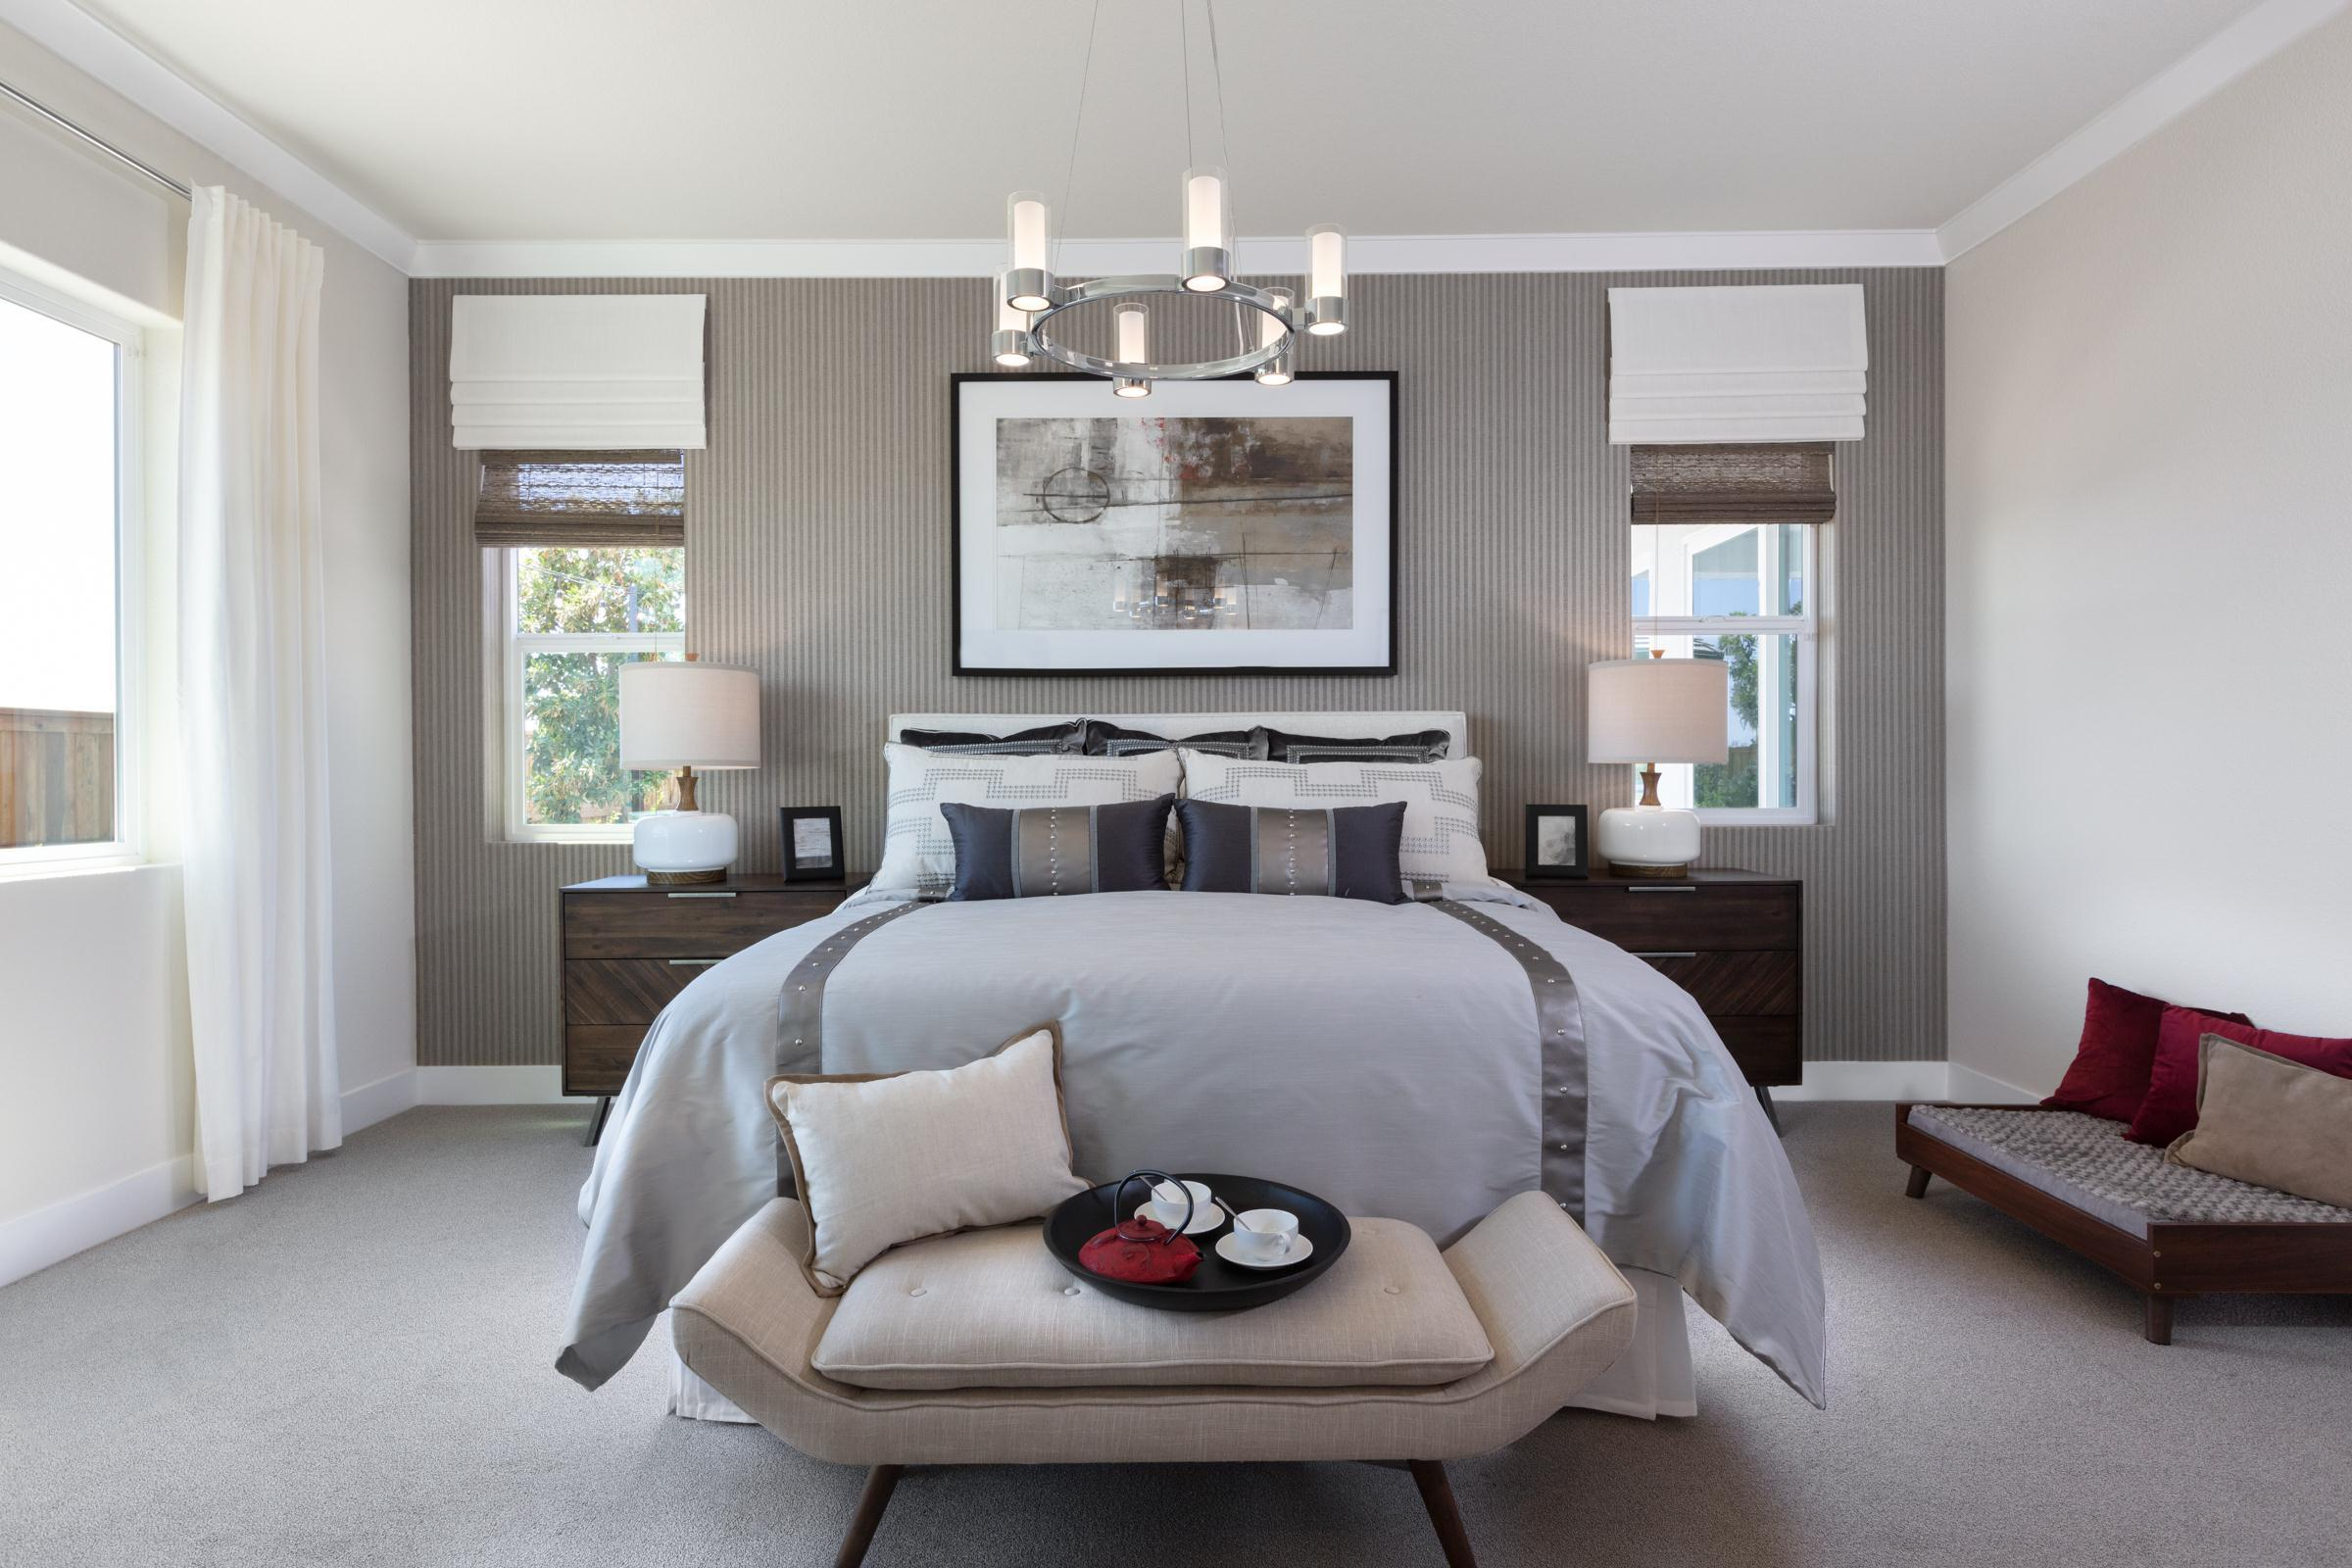 Bedroom featured in the Plan 1 Bungalow By Anthem United Homes Inc in Stockton-Lodi, CA